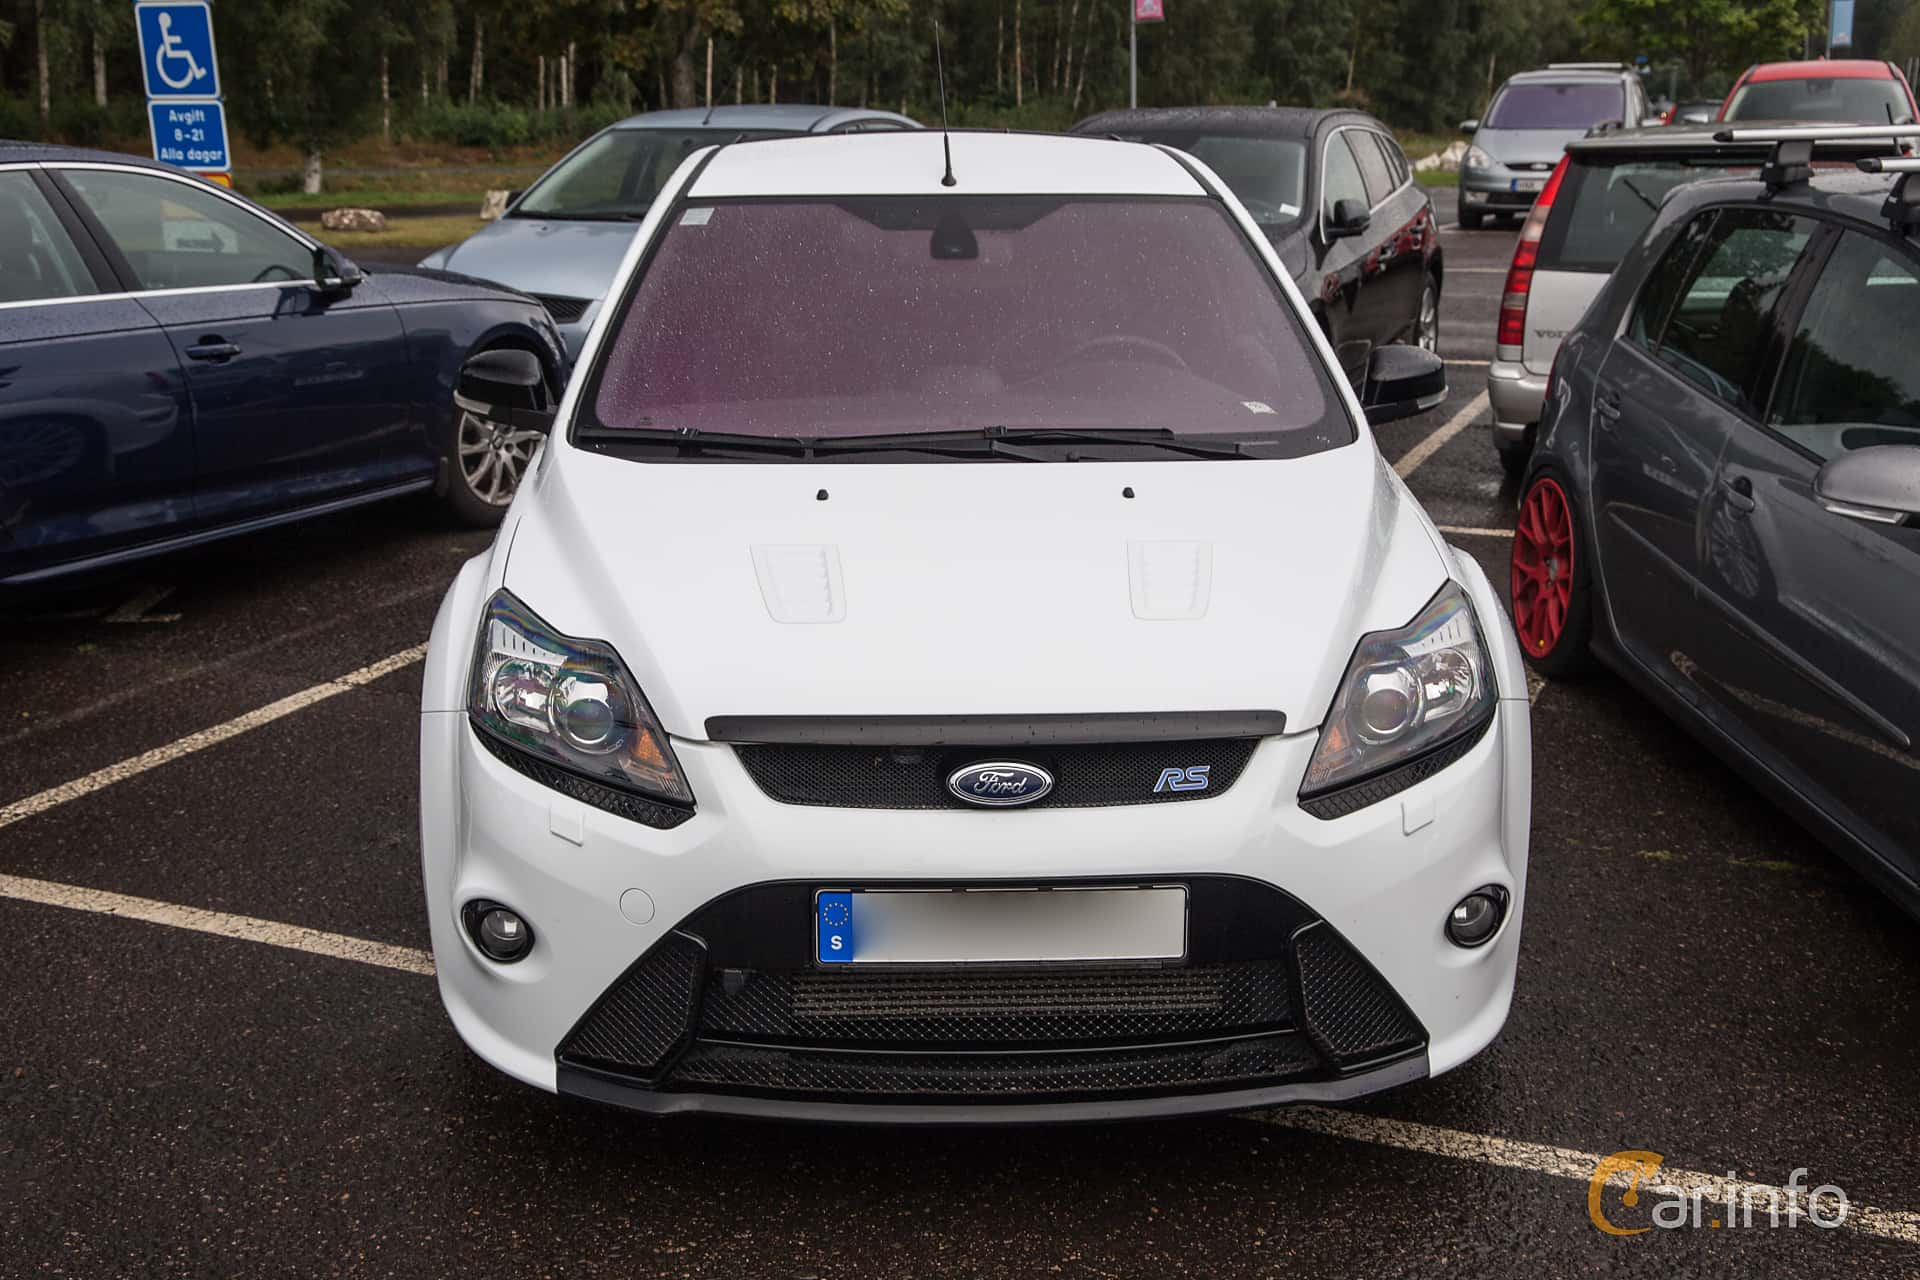 Ford Focus RS 2.5 Manual, 305hp, 2010 at Sommarlandsträffen 2017